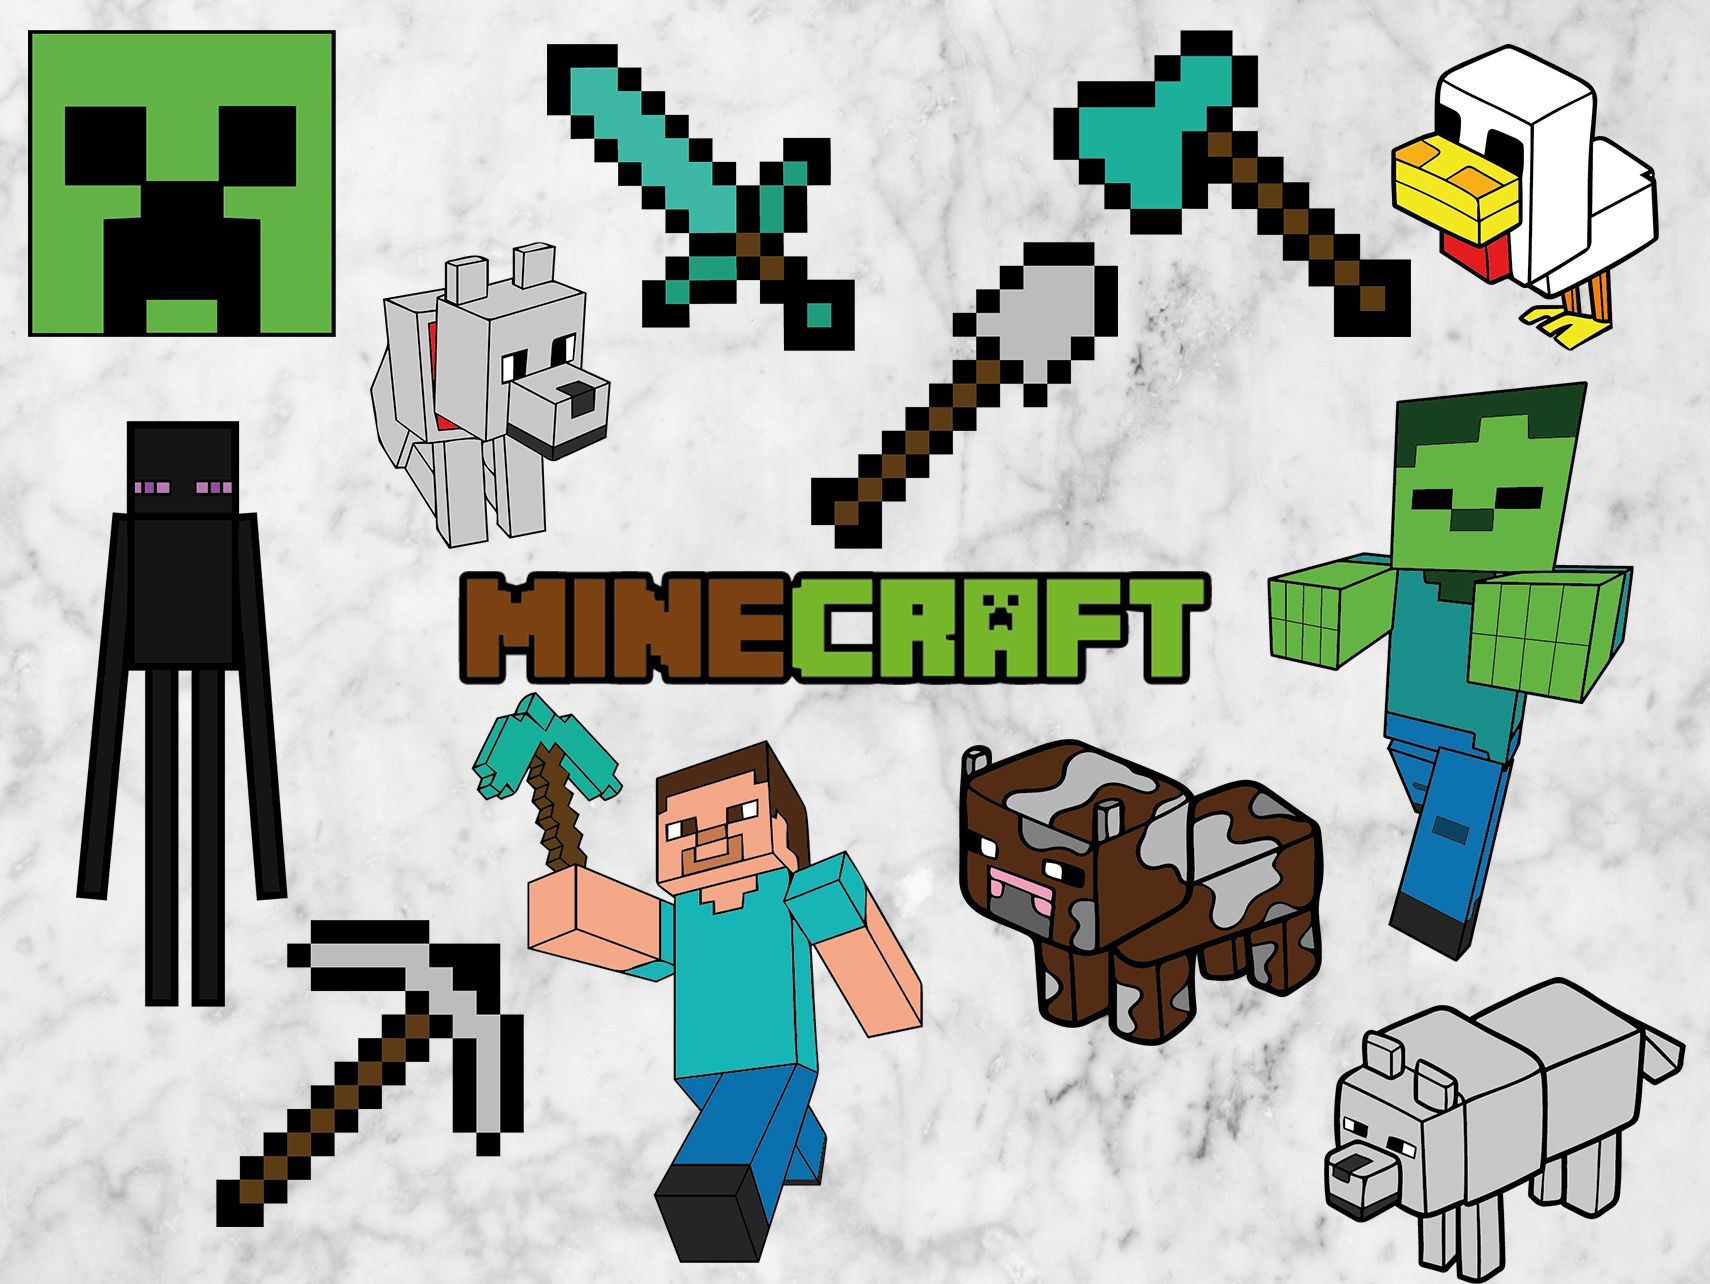 Pin on Minecraft party